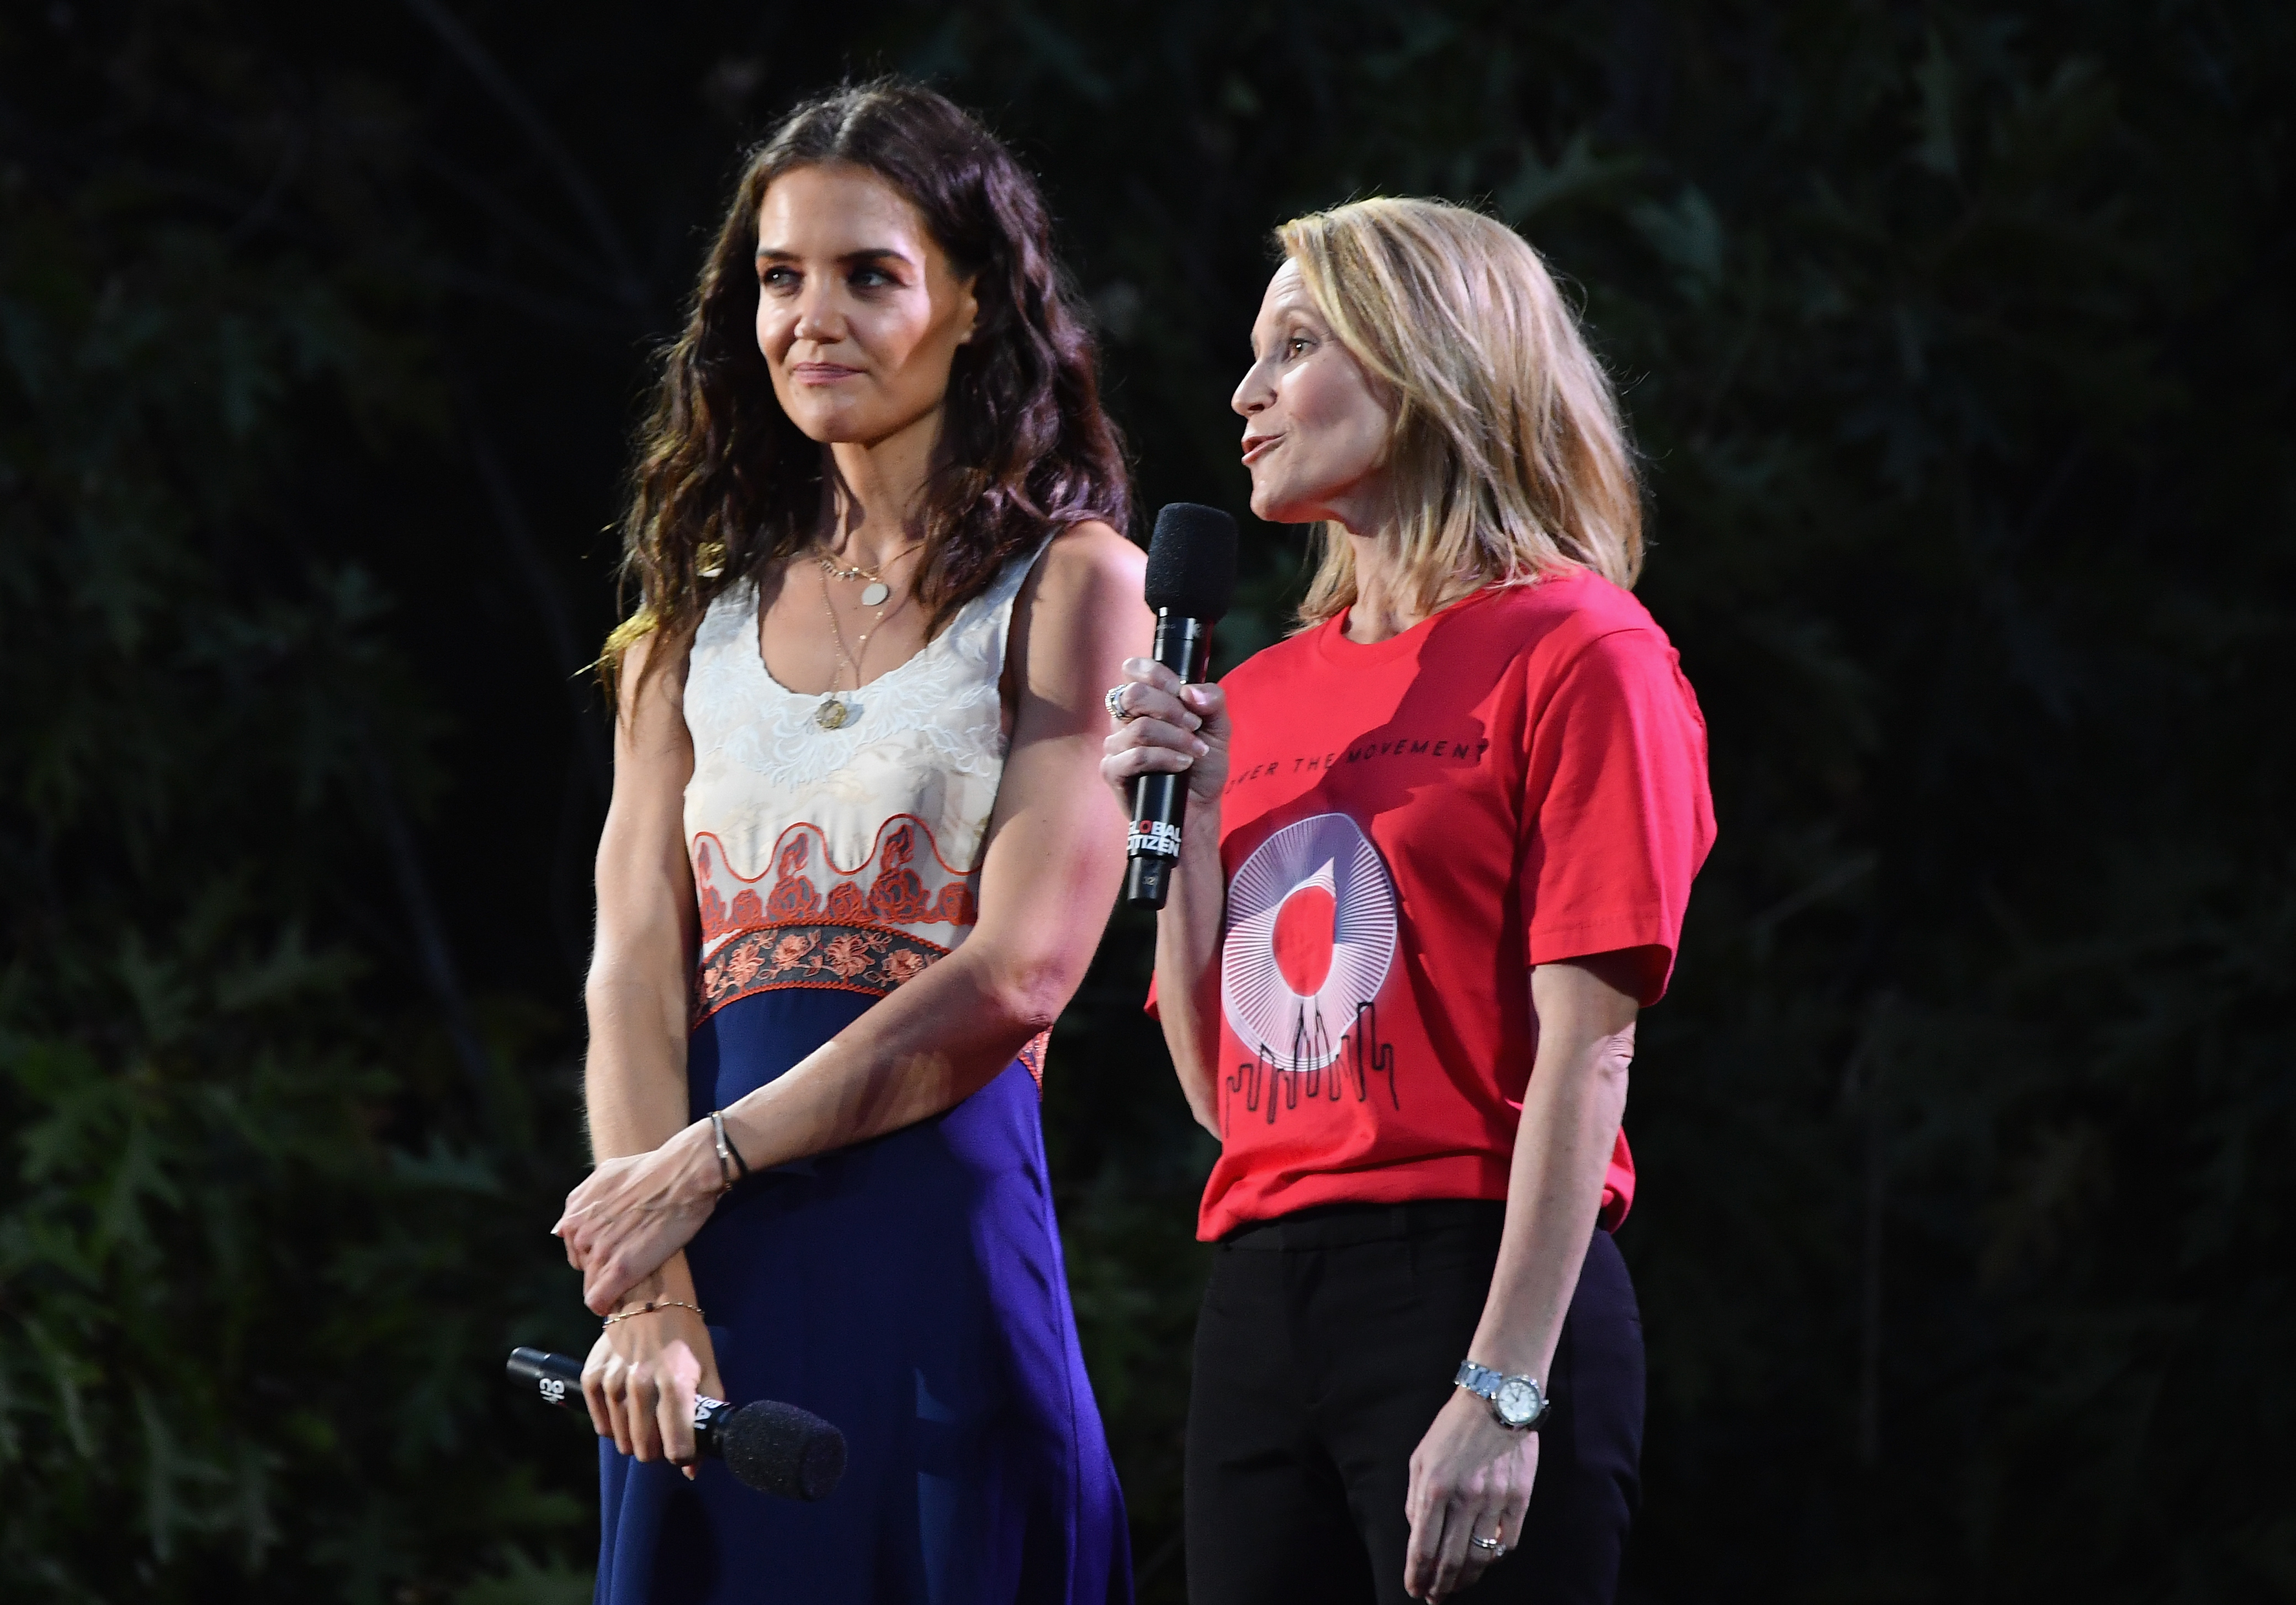 US actress Katie Holmes (L) and Proctor & Gamble President Feminine Care Jennifer Davis speak onstage at the 2019 Global Citizen Festival: Power The Movement in Central Park in New York on September 28, 2019. (Photo by Angela Weiss / AFP)        (Photo credit should read ANGELA WEISS/AFP/Getty Images)